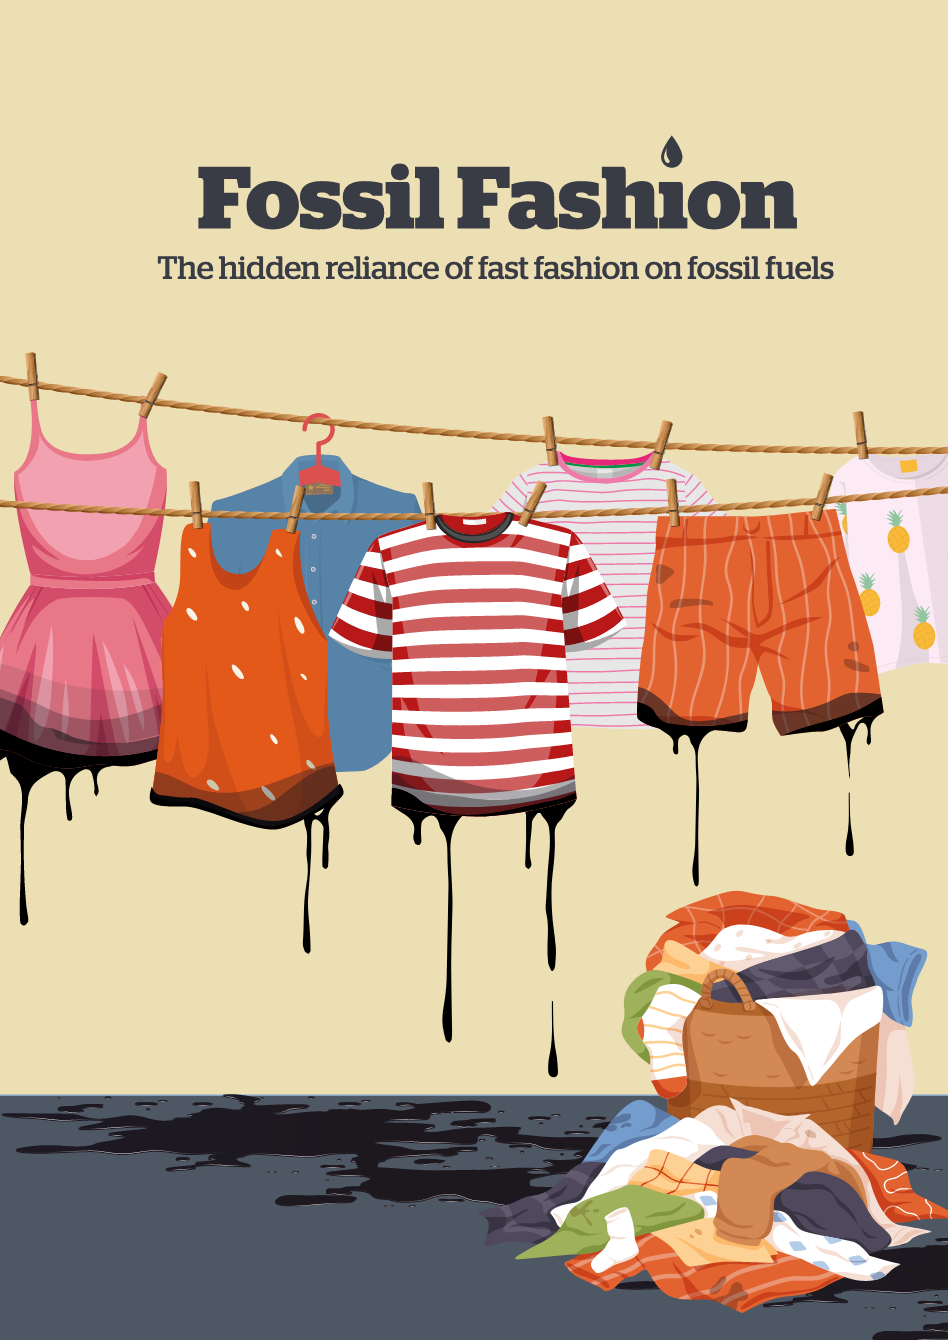 Fossil fashion report NGO textile polyester